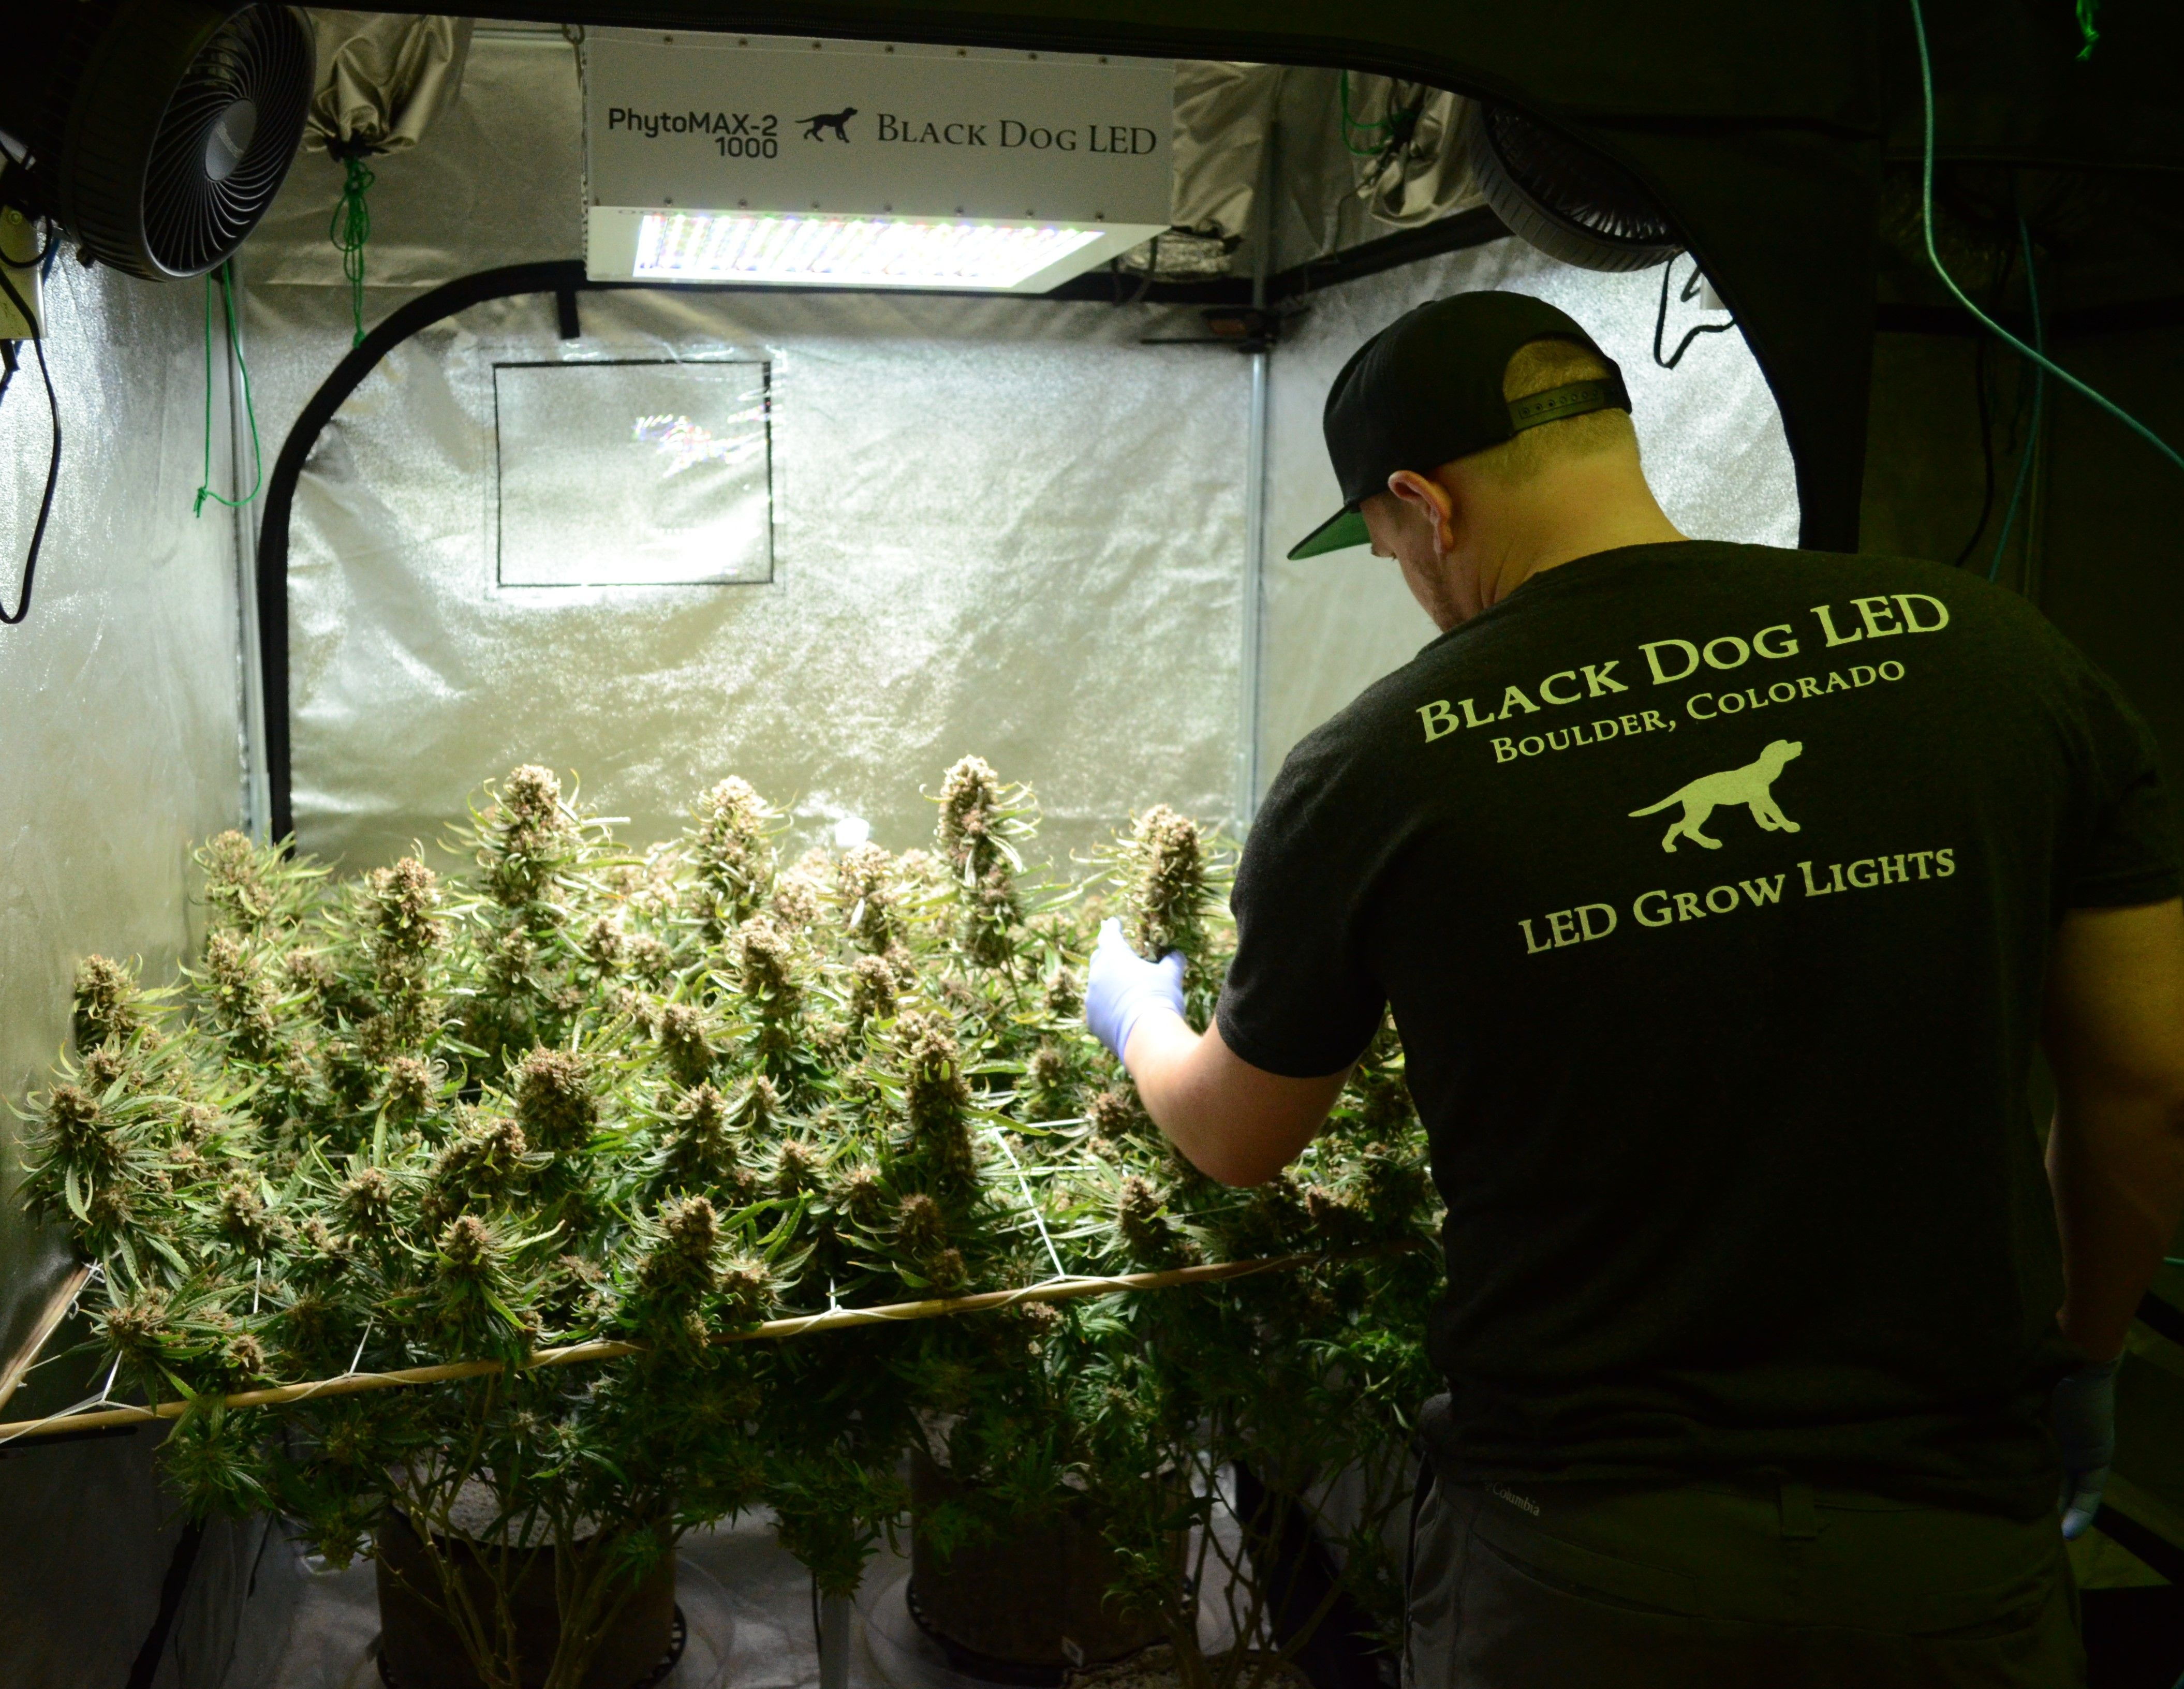 Get your 4x4 Grow kit from BlackDogLED and MAXimize your garden